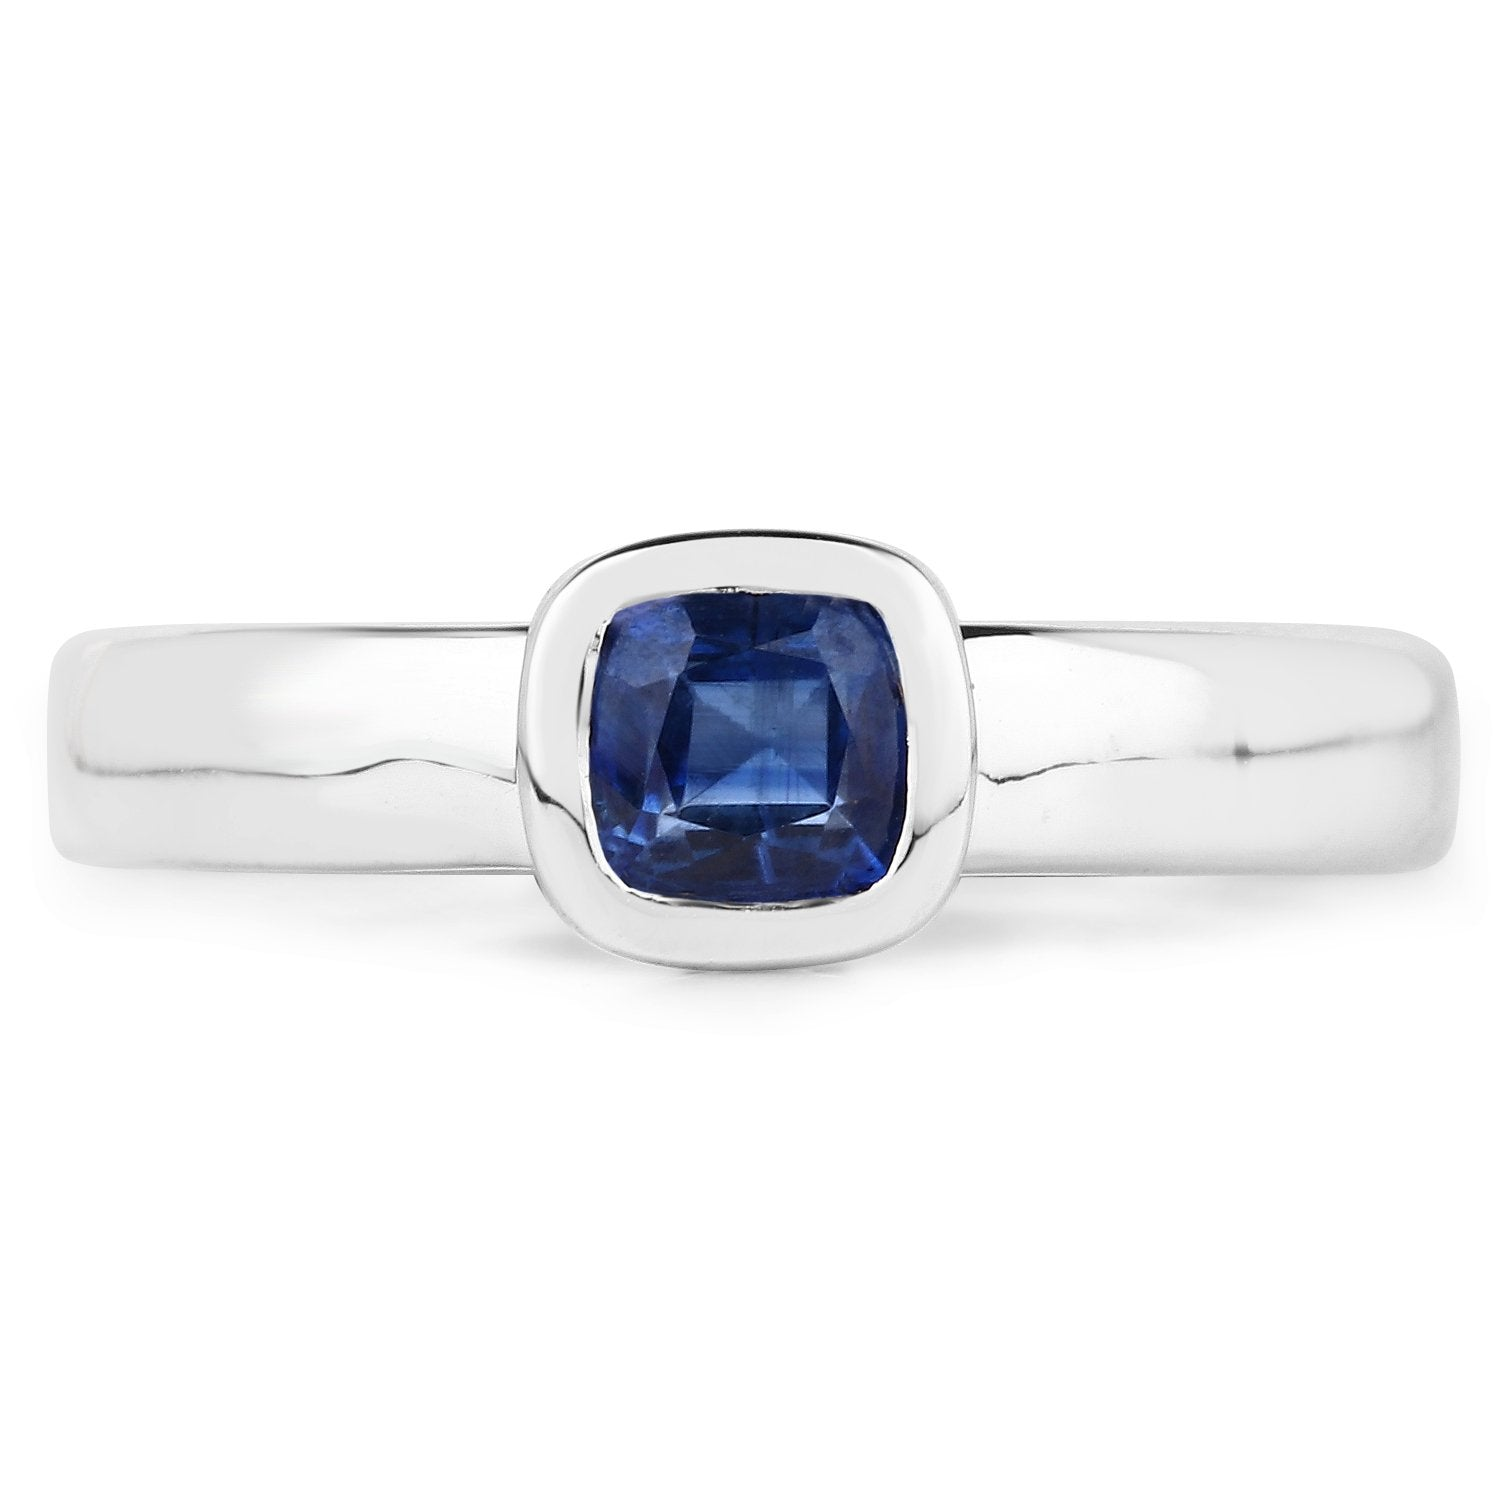 LoveHuang 0.63 Carats Genuine Kyanite Cushion Ring Solid .925 Sterling Silver With Rhodium Plating